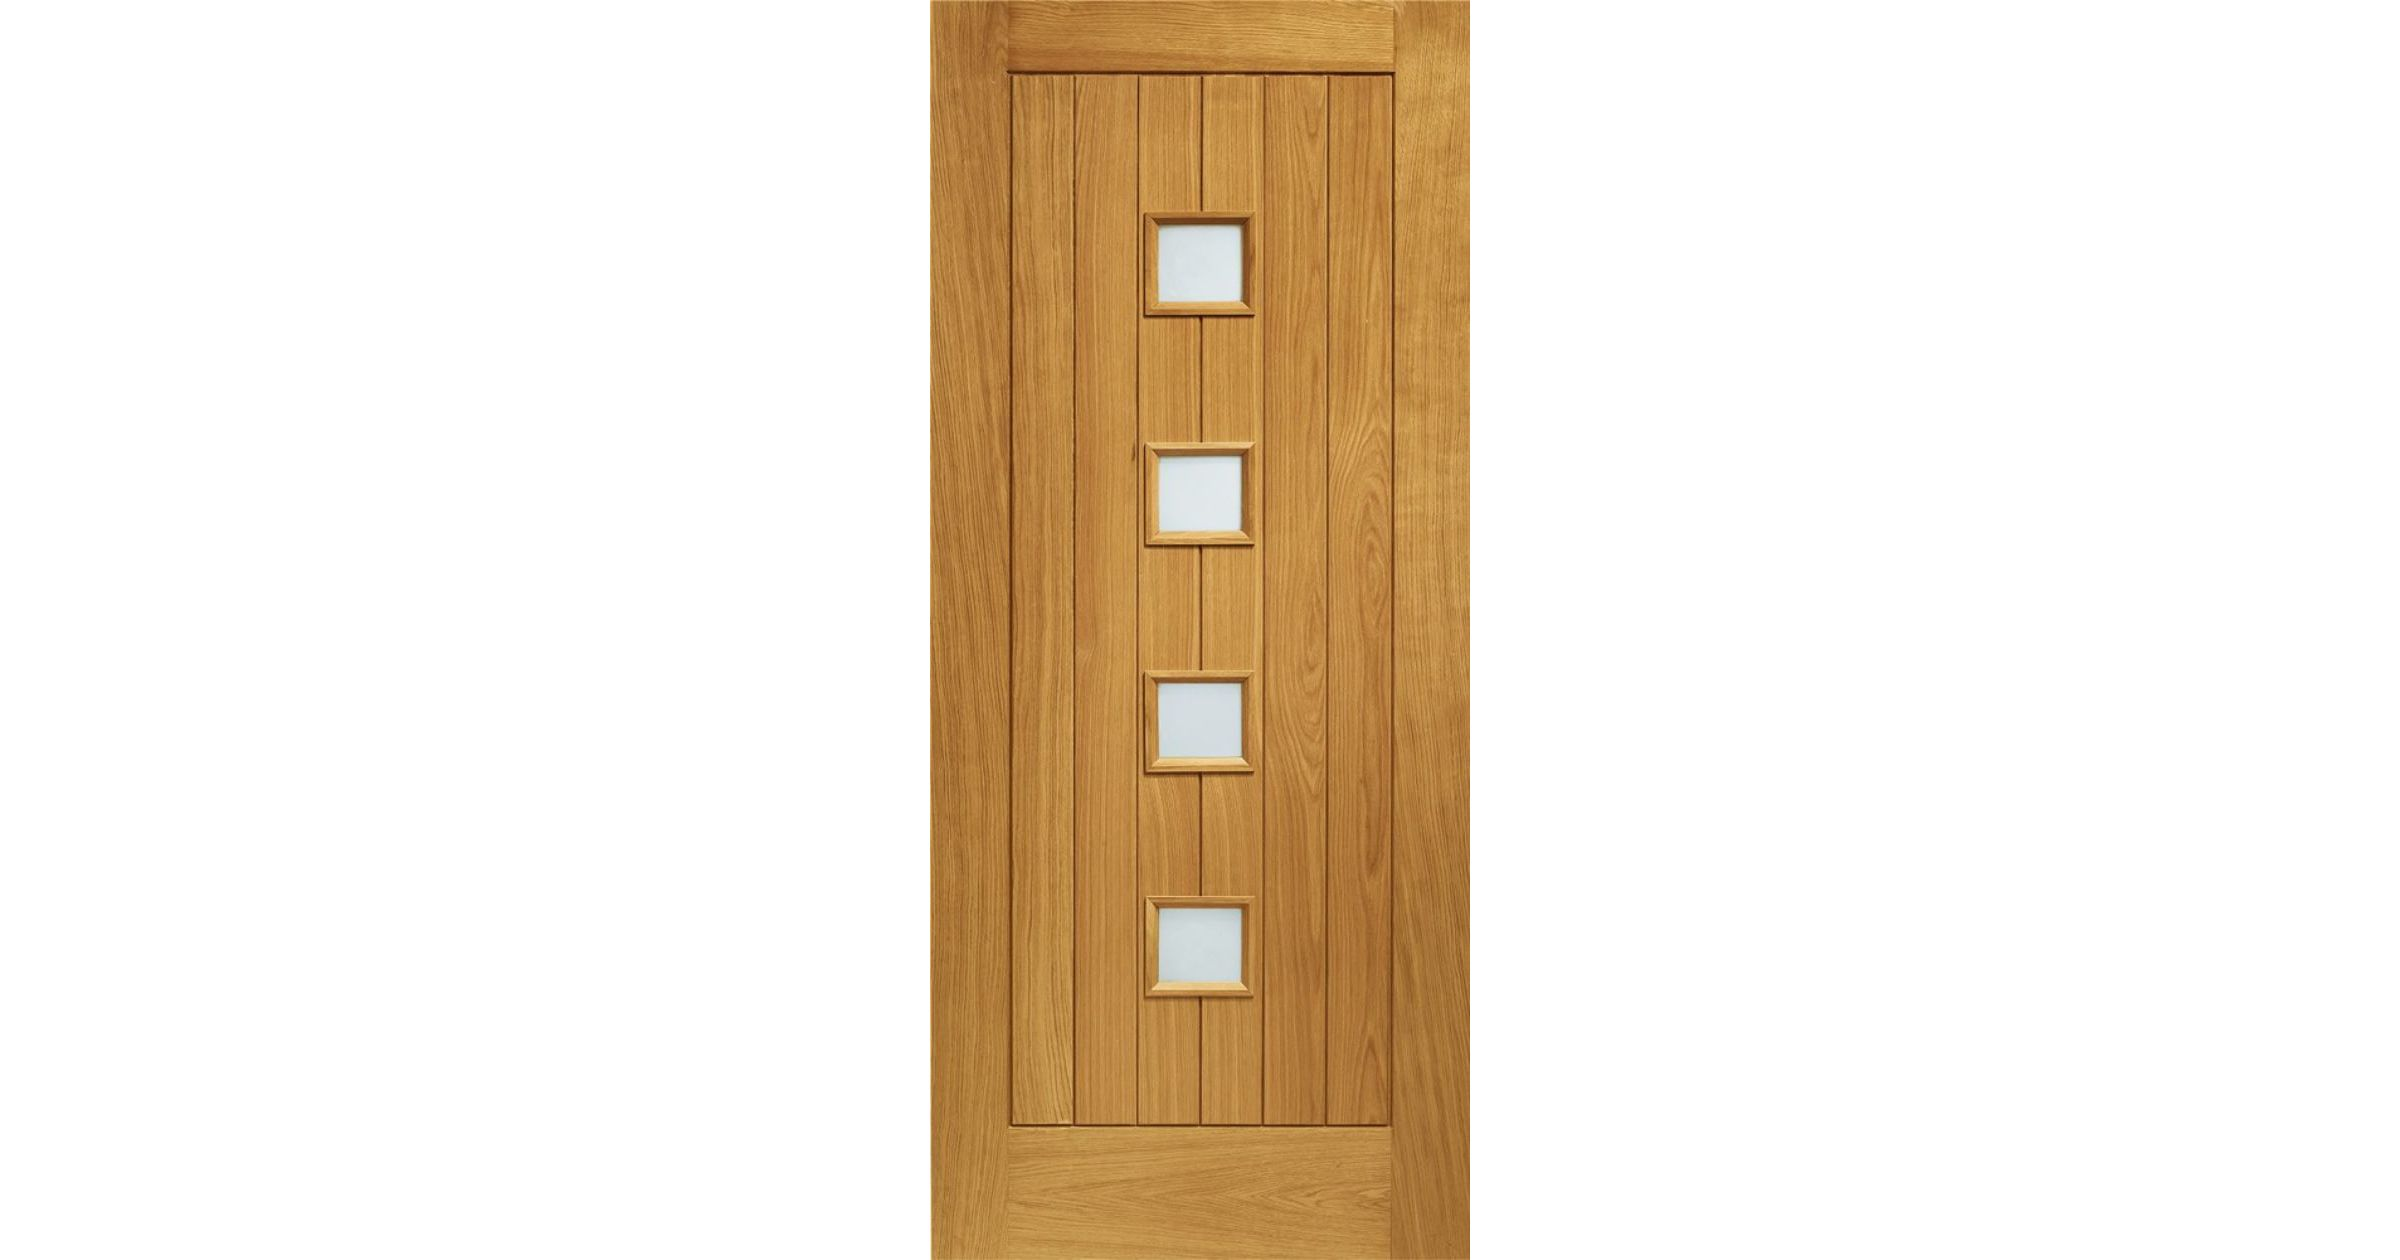 Siena Glazed Door: 4-light *Double Glazed* T&G Effect *Pre-Finished Oak* 44mm M&T External Door - XL Doors